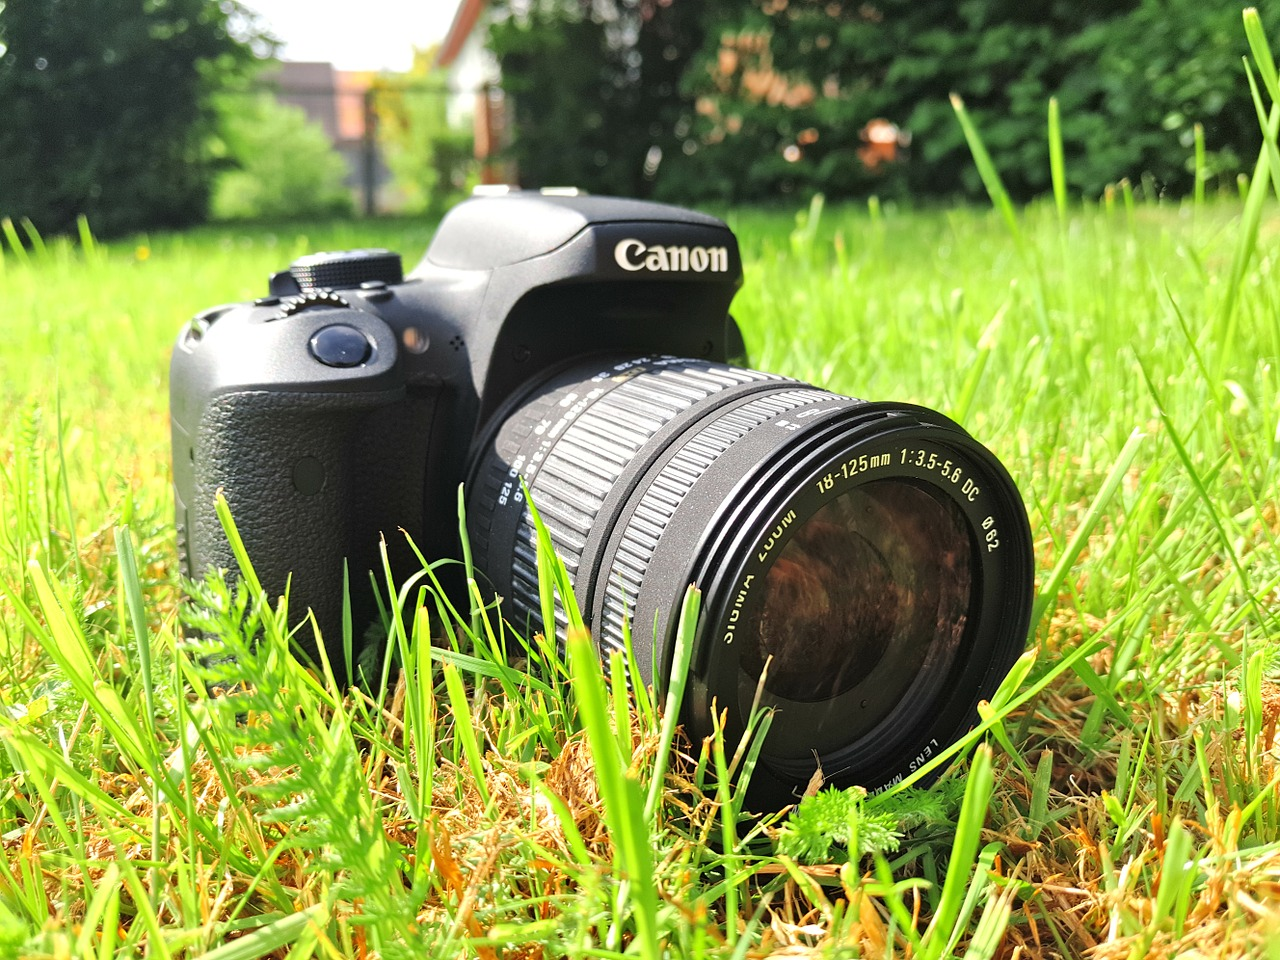 Canon Eos 750d Review Best Lenses Sample Images Videos 760d Body Only Wifi